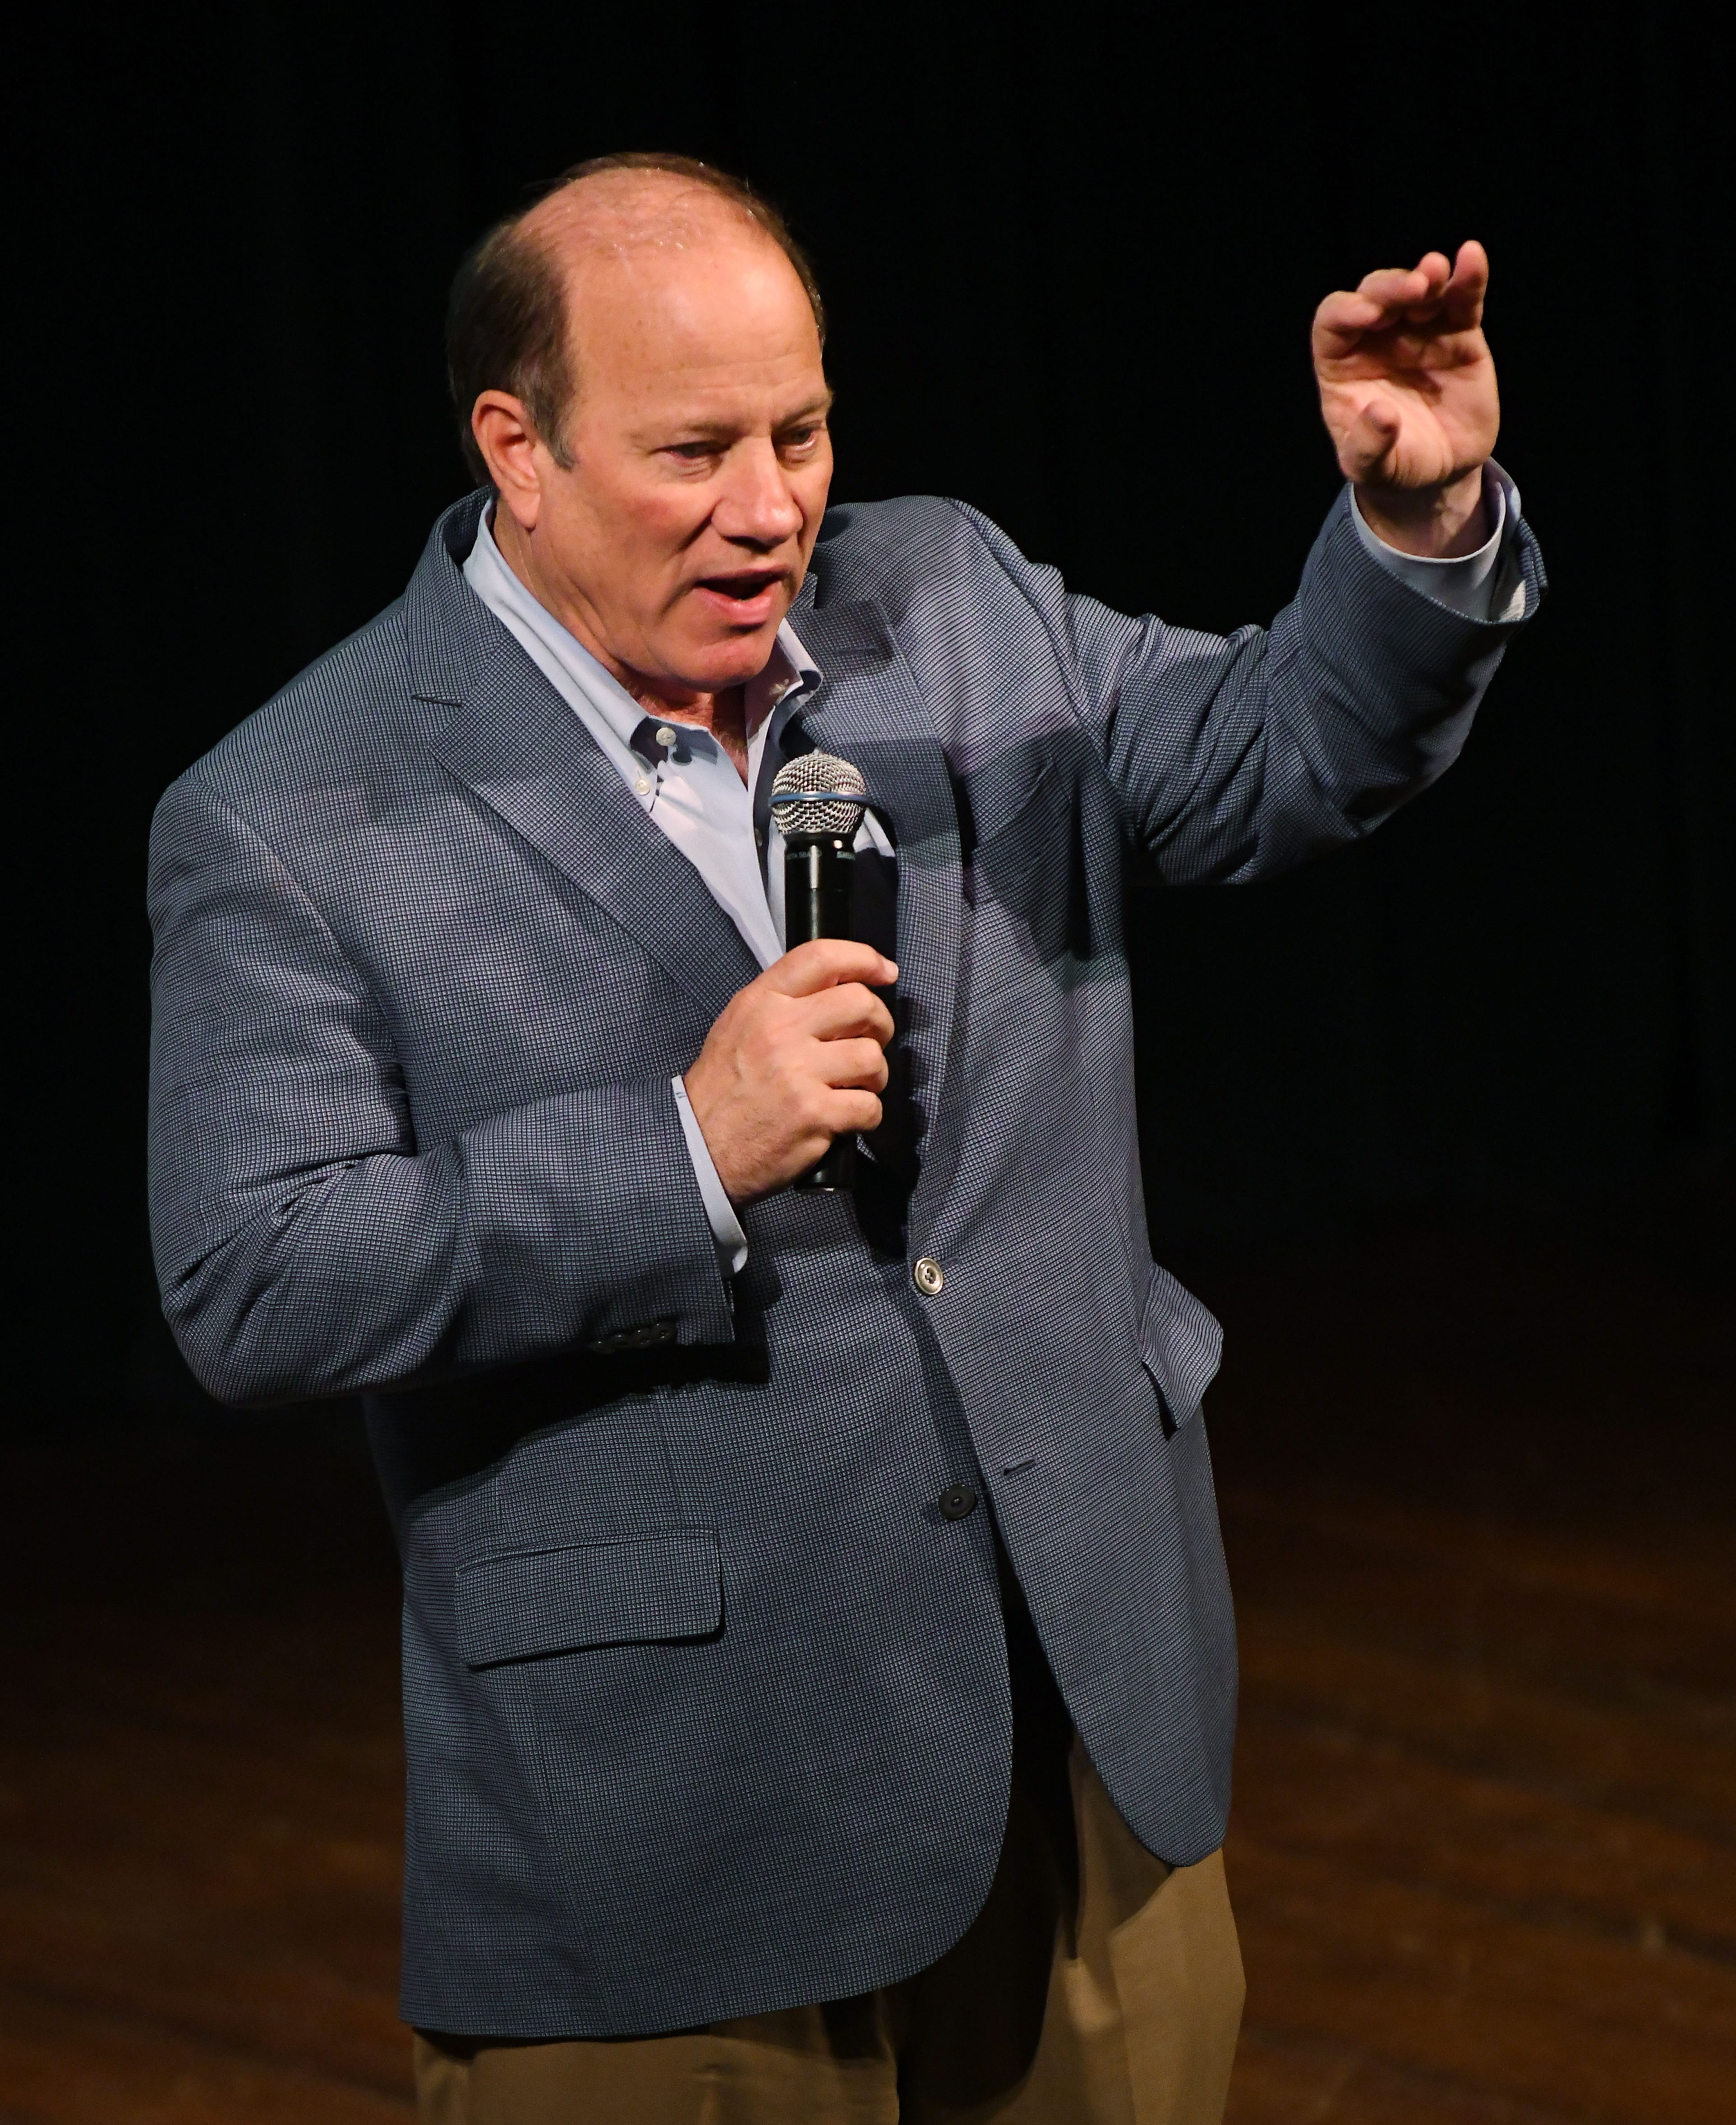 Detroit Mayor Mike Duggan spoke about getting more ex-offenders and low-income residents access to employment at the um3detroit symposium Thursday at the Gem Theatre.